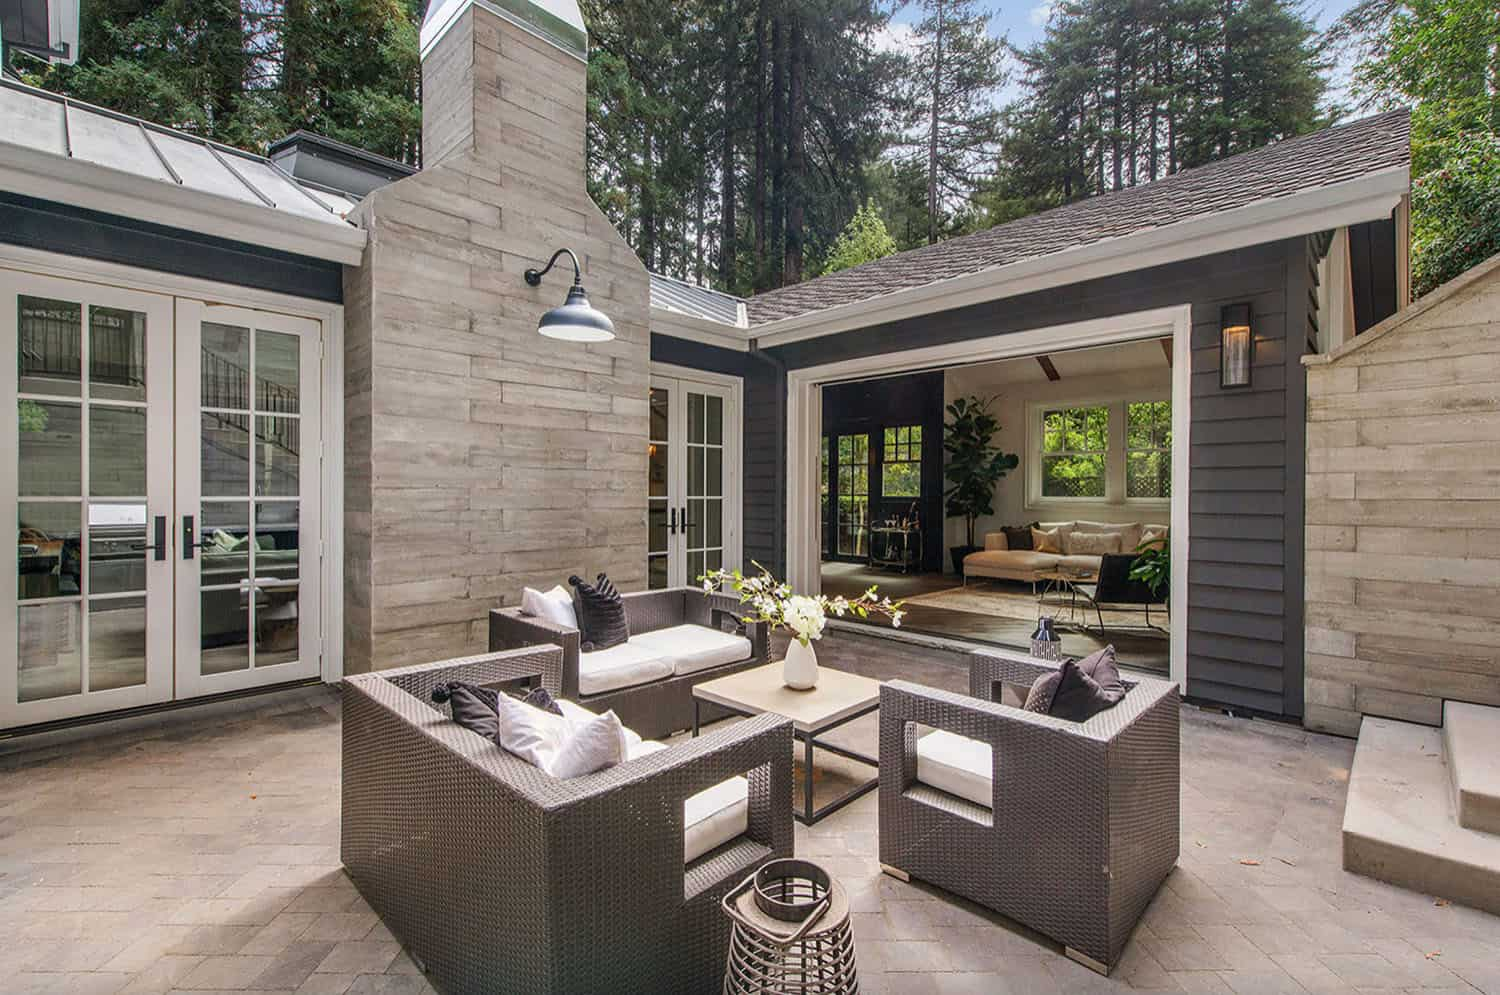 Transitional house terrace